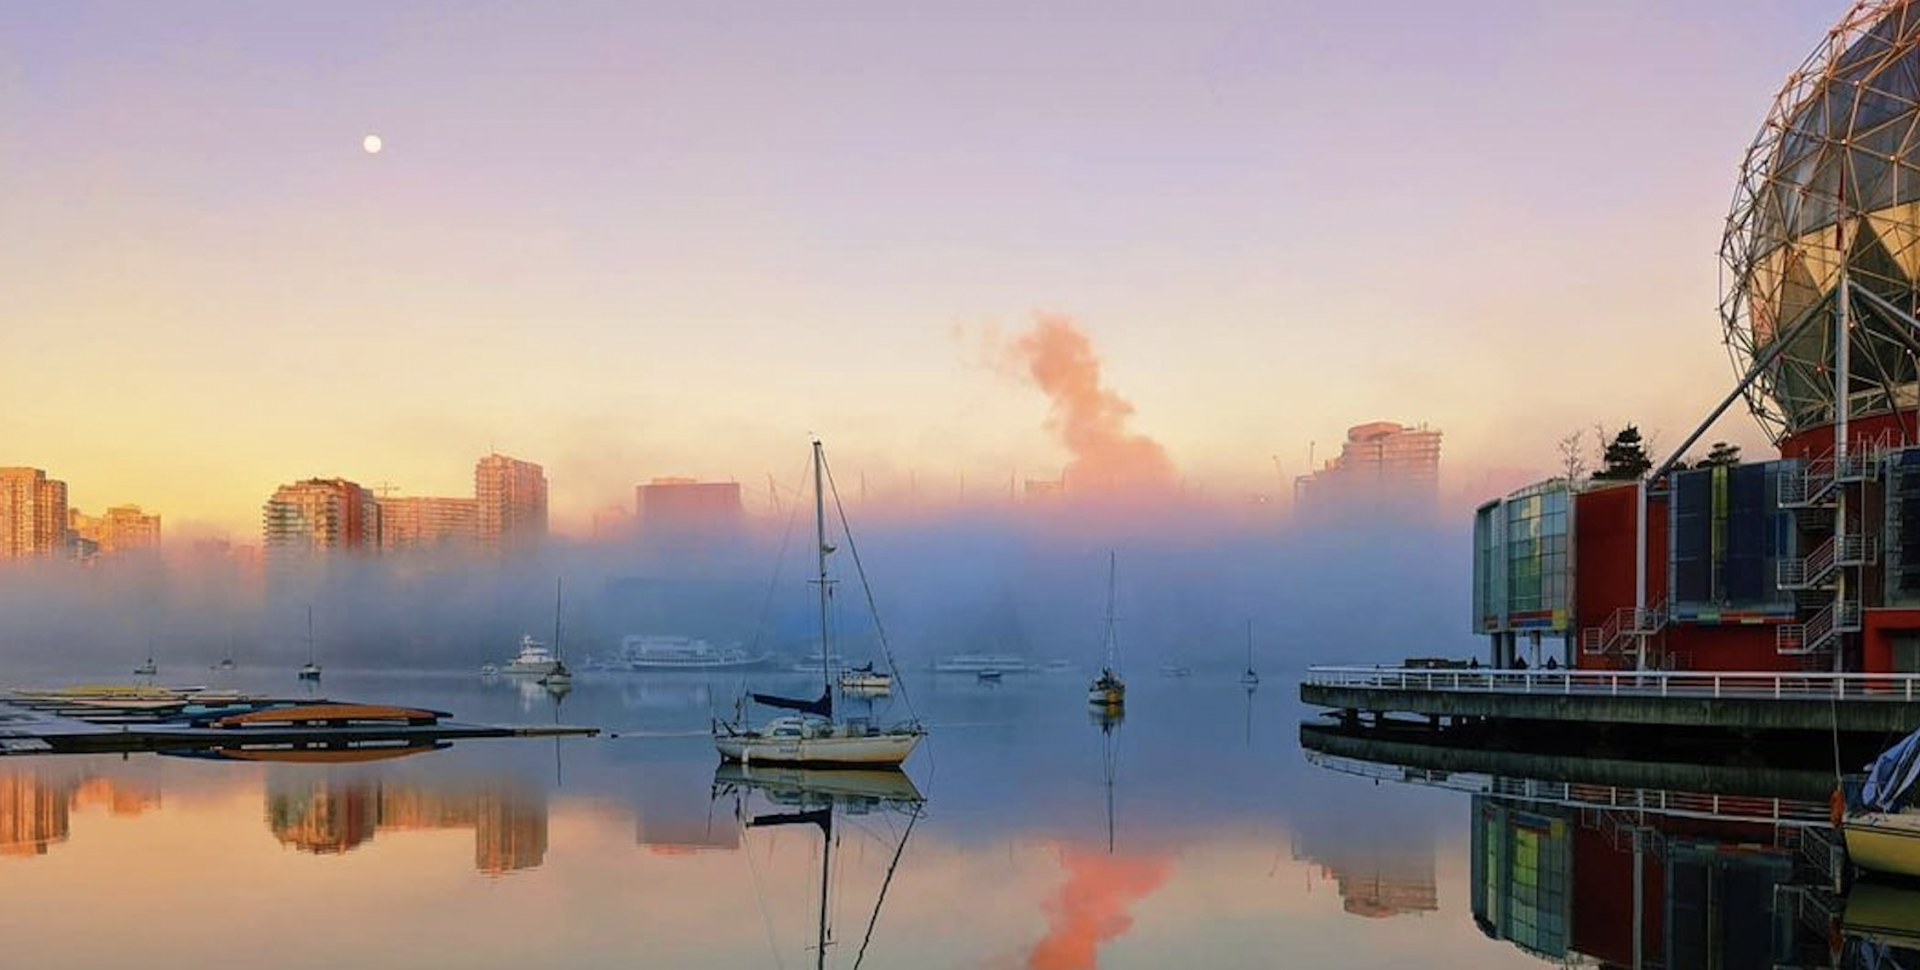 Fog blanketed over Vancouver this morning and it was a gorgeous sight (PHOTOS)